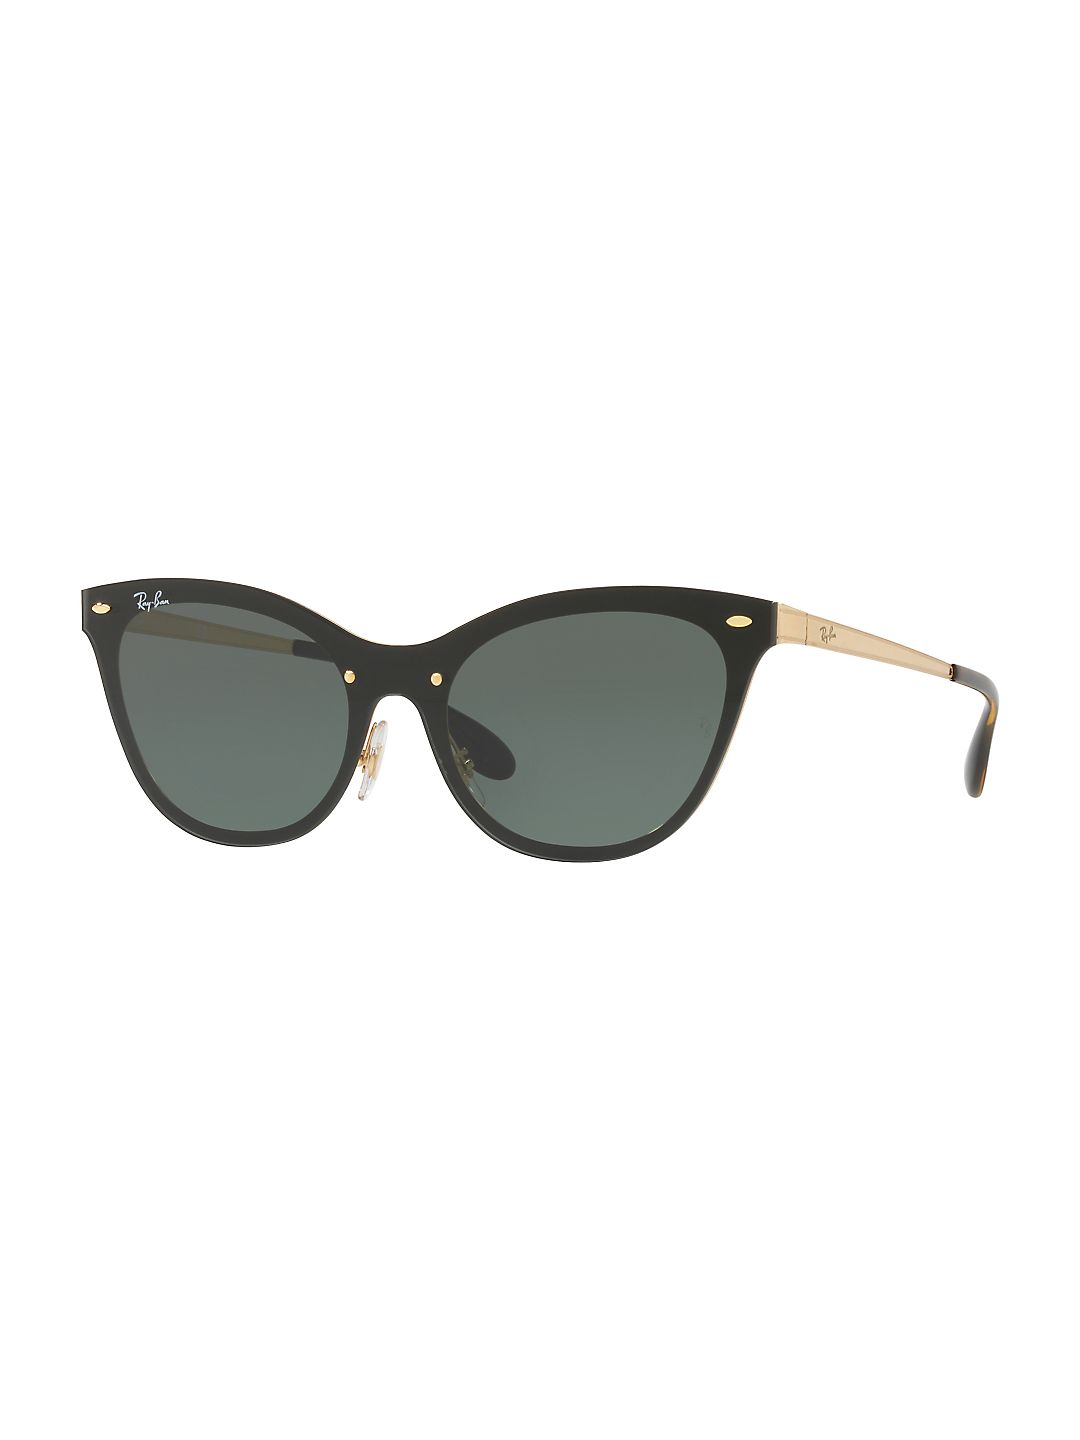 07eb55b6a70 Ray-Ban - Ray Ban RB 3580 043 71 BLAZE CAT EYE Sunglasses - Walmart.com